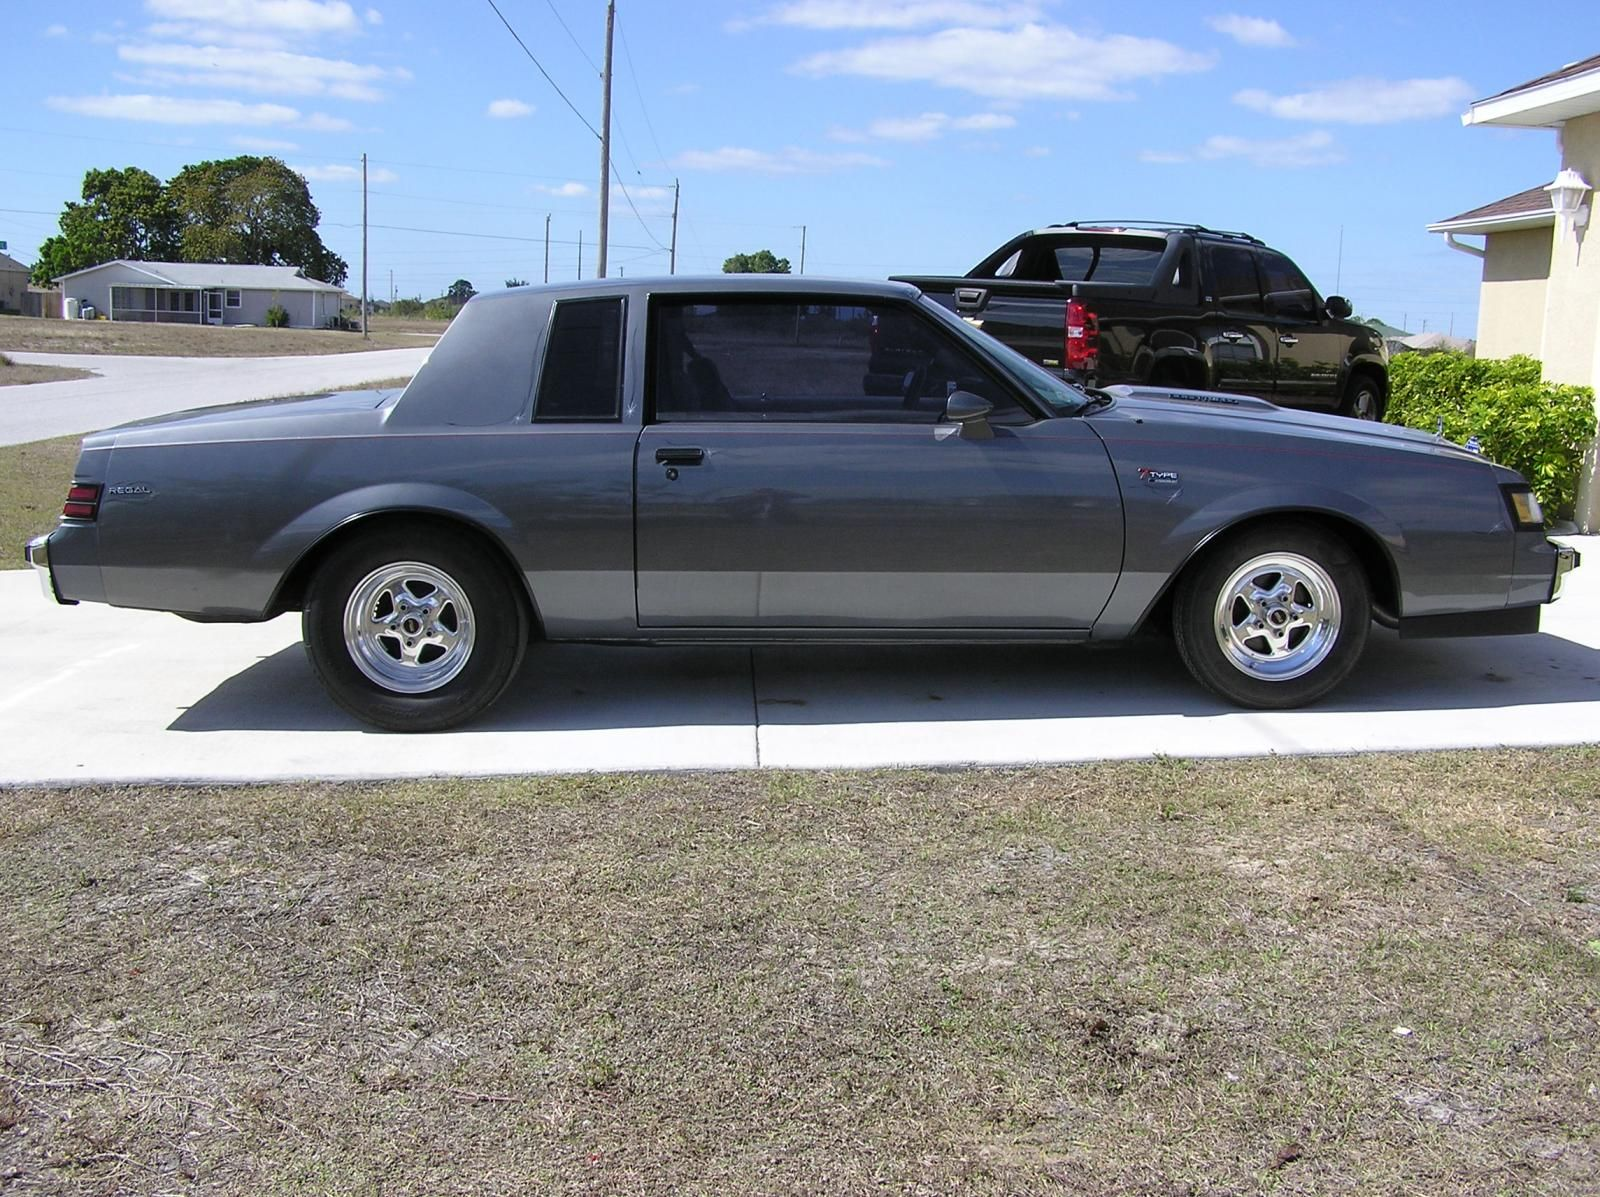 Up for sale is my 1986 buick regal t type this is a pristine rust free florida car with miles